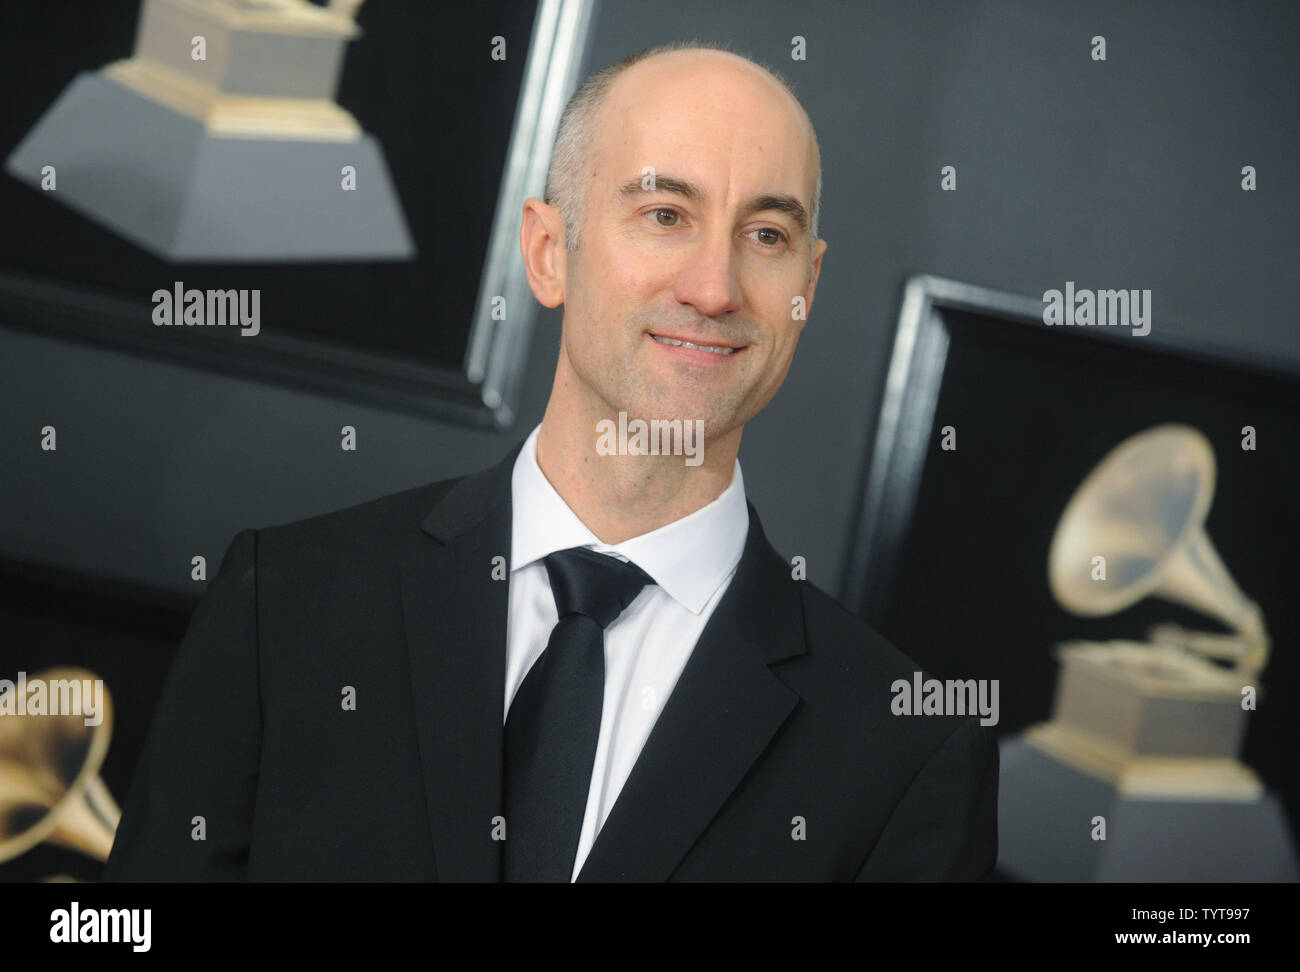 Alan Ferber arrives on the red carpet at the 60th Annual Grammy Awards ceremony at Madison Square Garden in New York City on January 28, 2018. The CBS network will broadcast the show live from Madison Square Garden in New York City. It will be the first time since 2003 that the ceremony will not be held in Los Angeles.       Photo by Dennis Van Tine/UPI - Stock Image